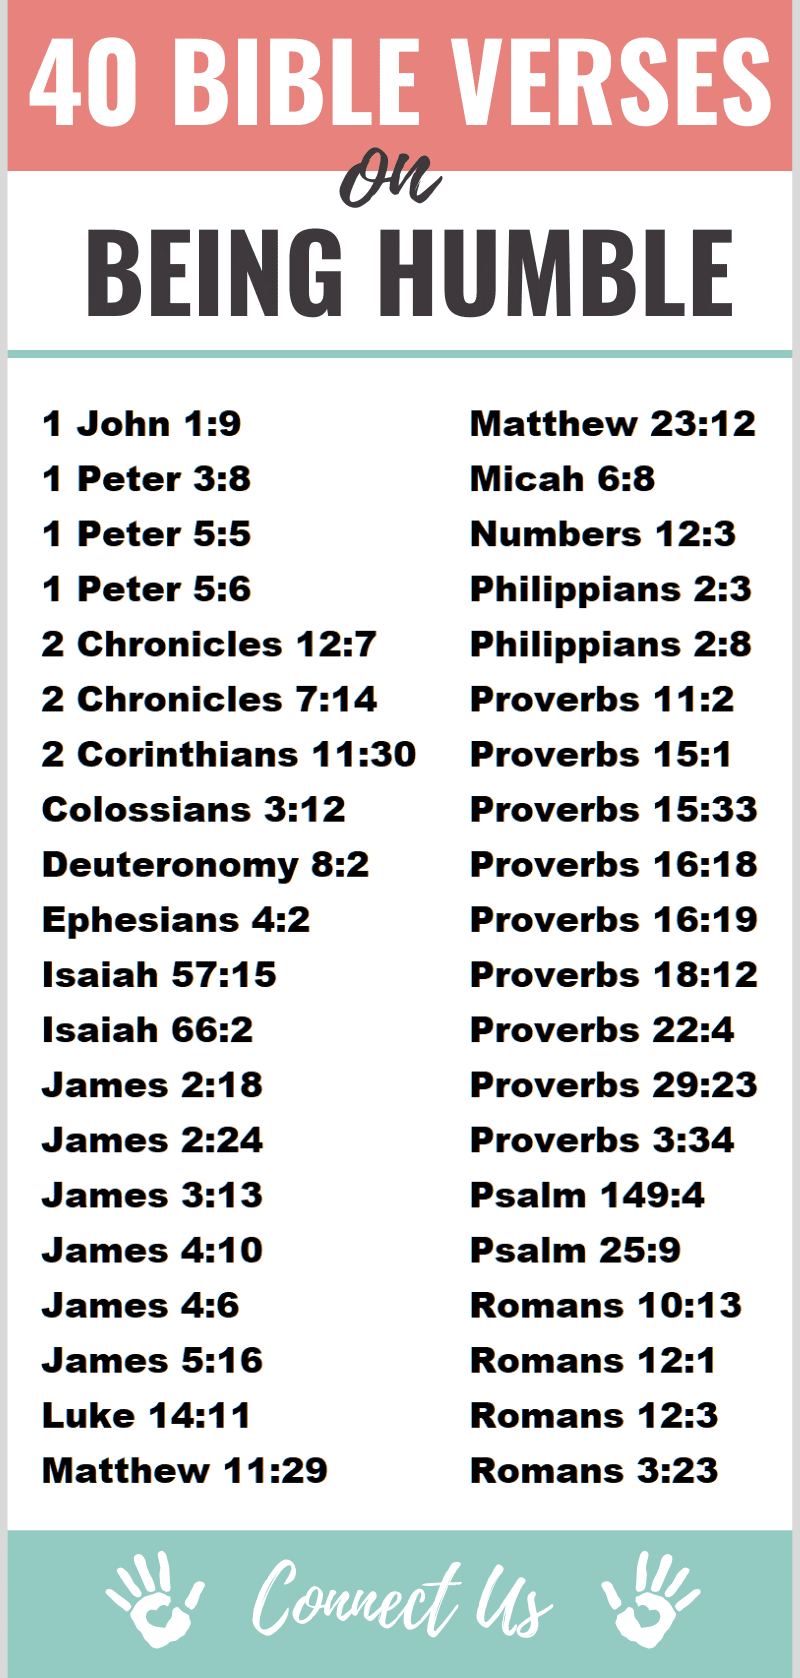 Bible Verses on Being Humble